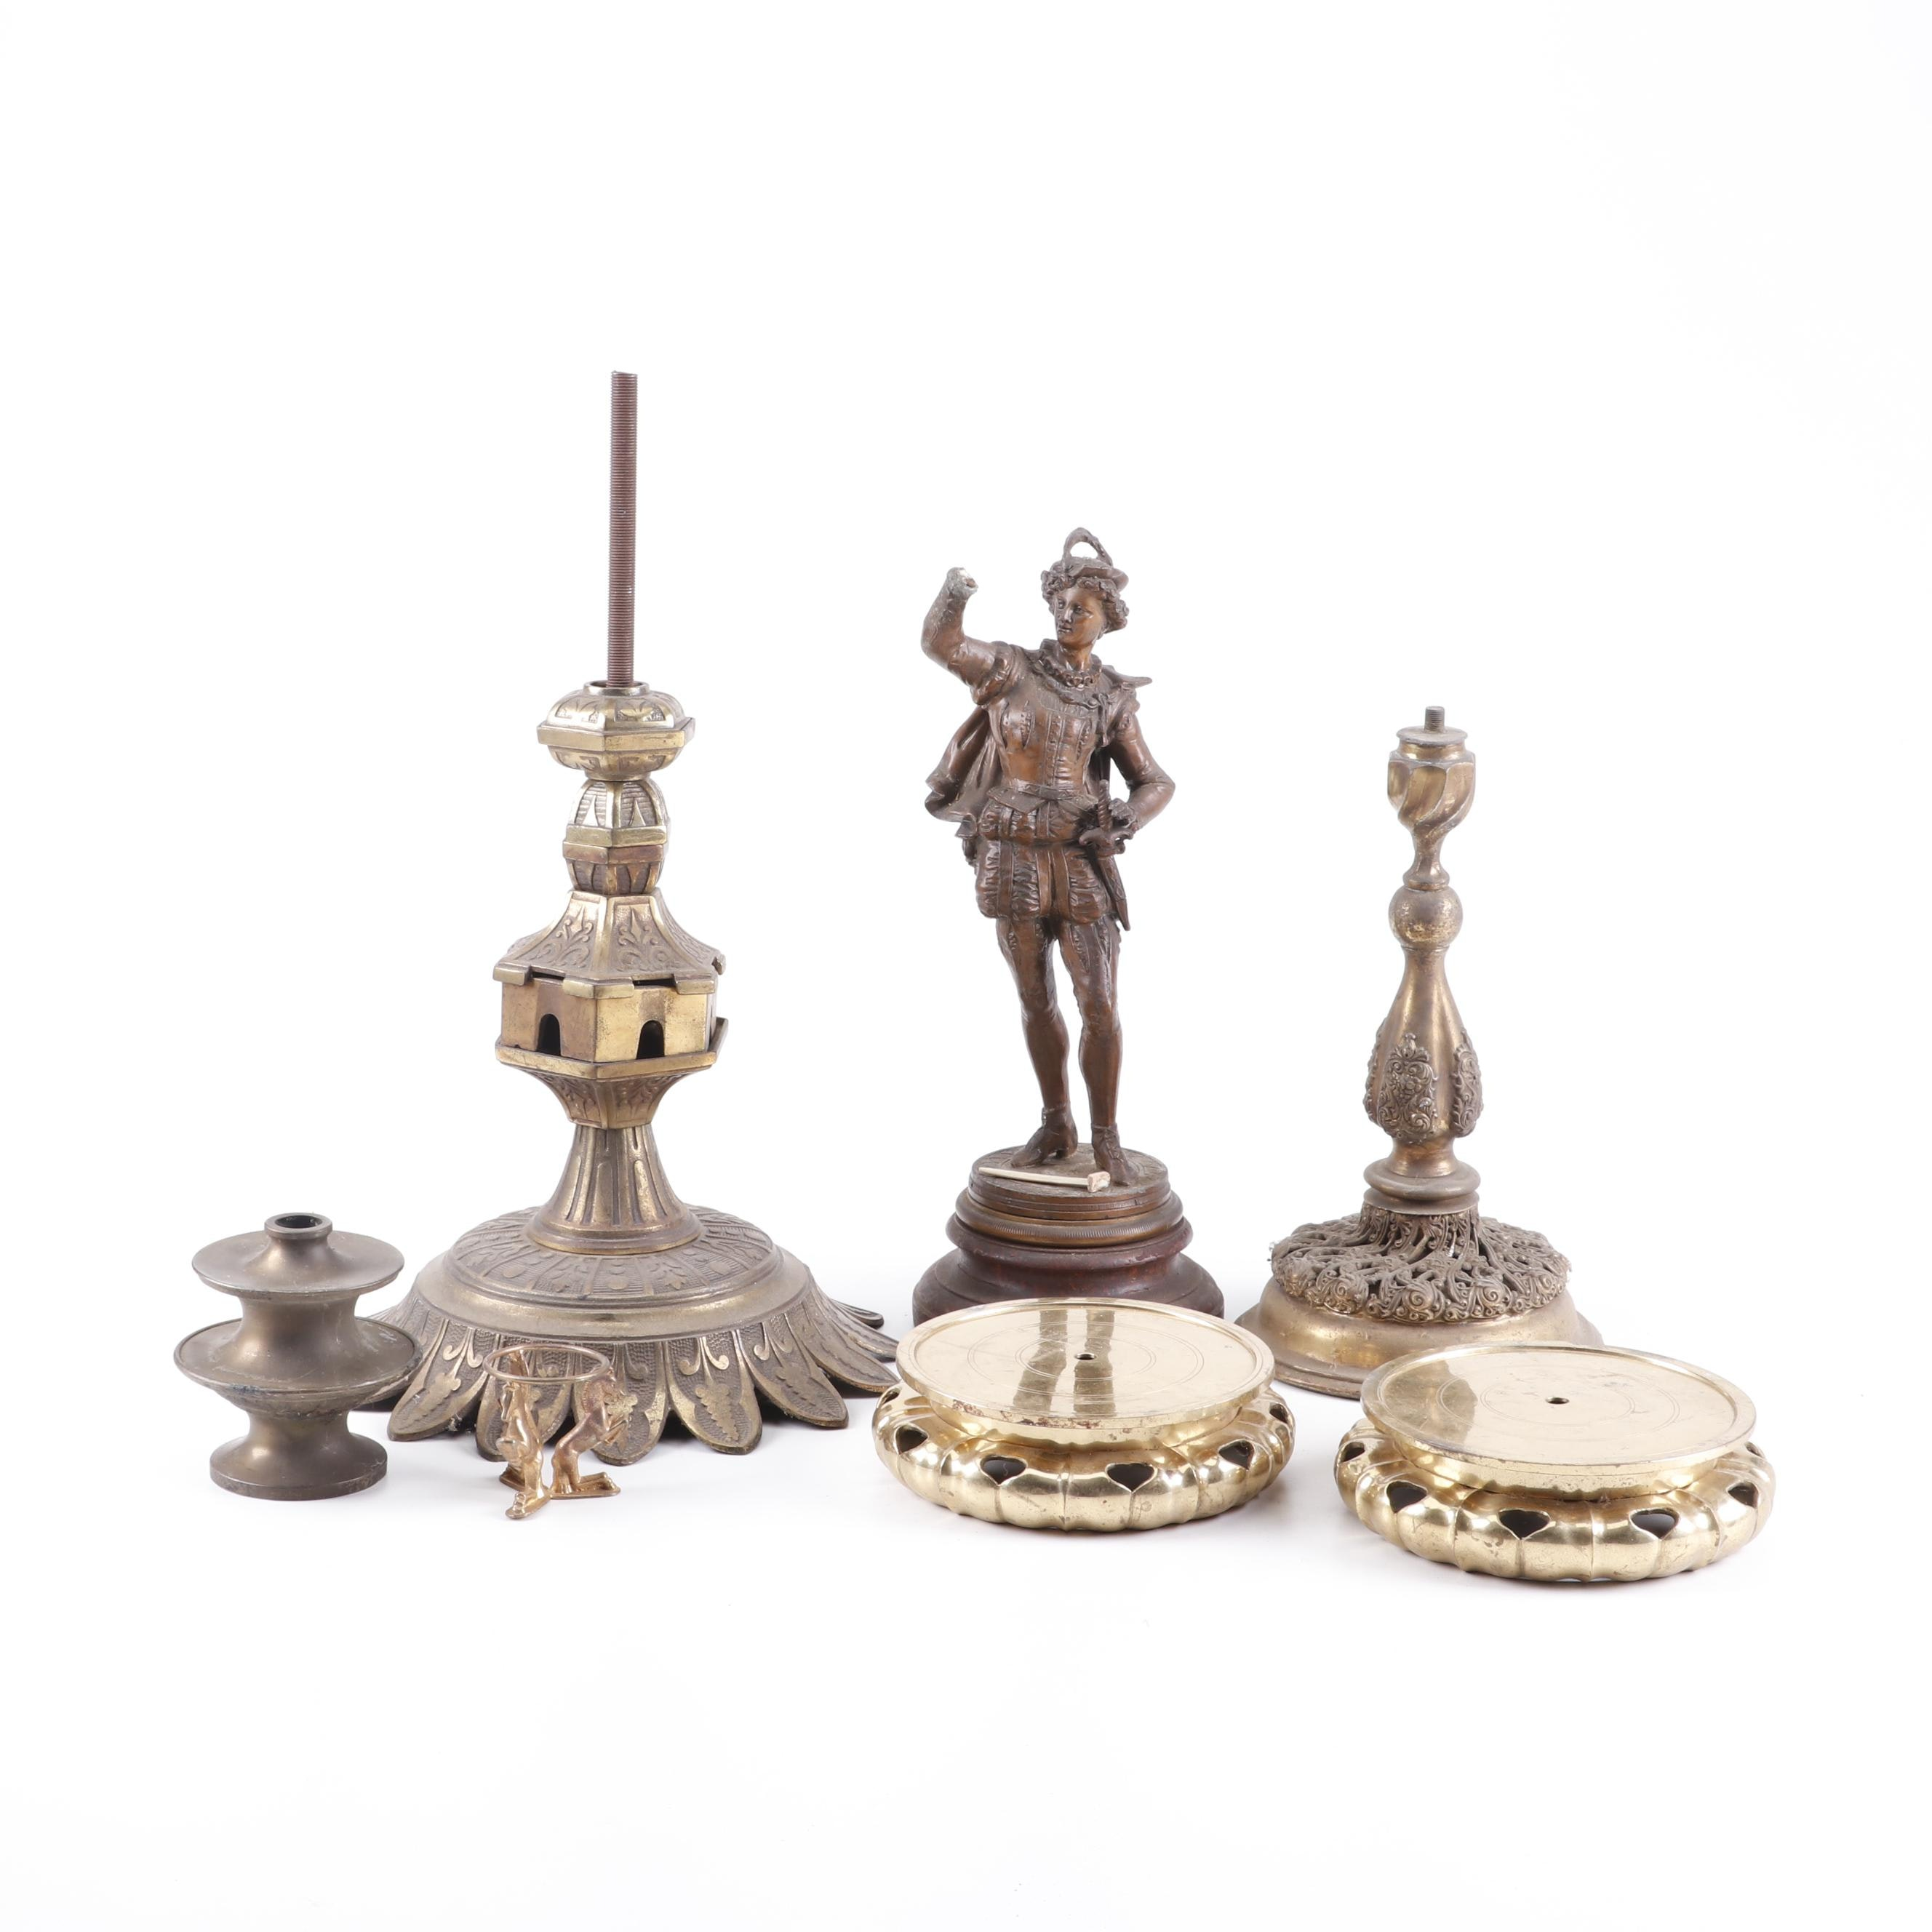 Spelter Swordsman Sculpture and Lamp Parts of Brass and Metal